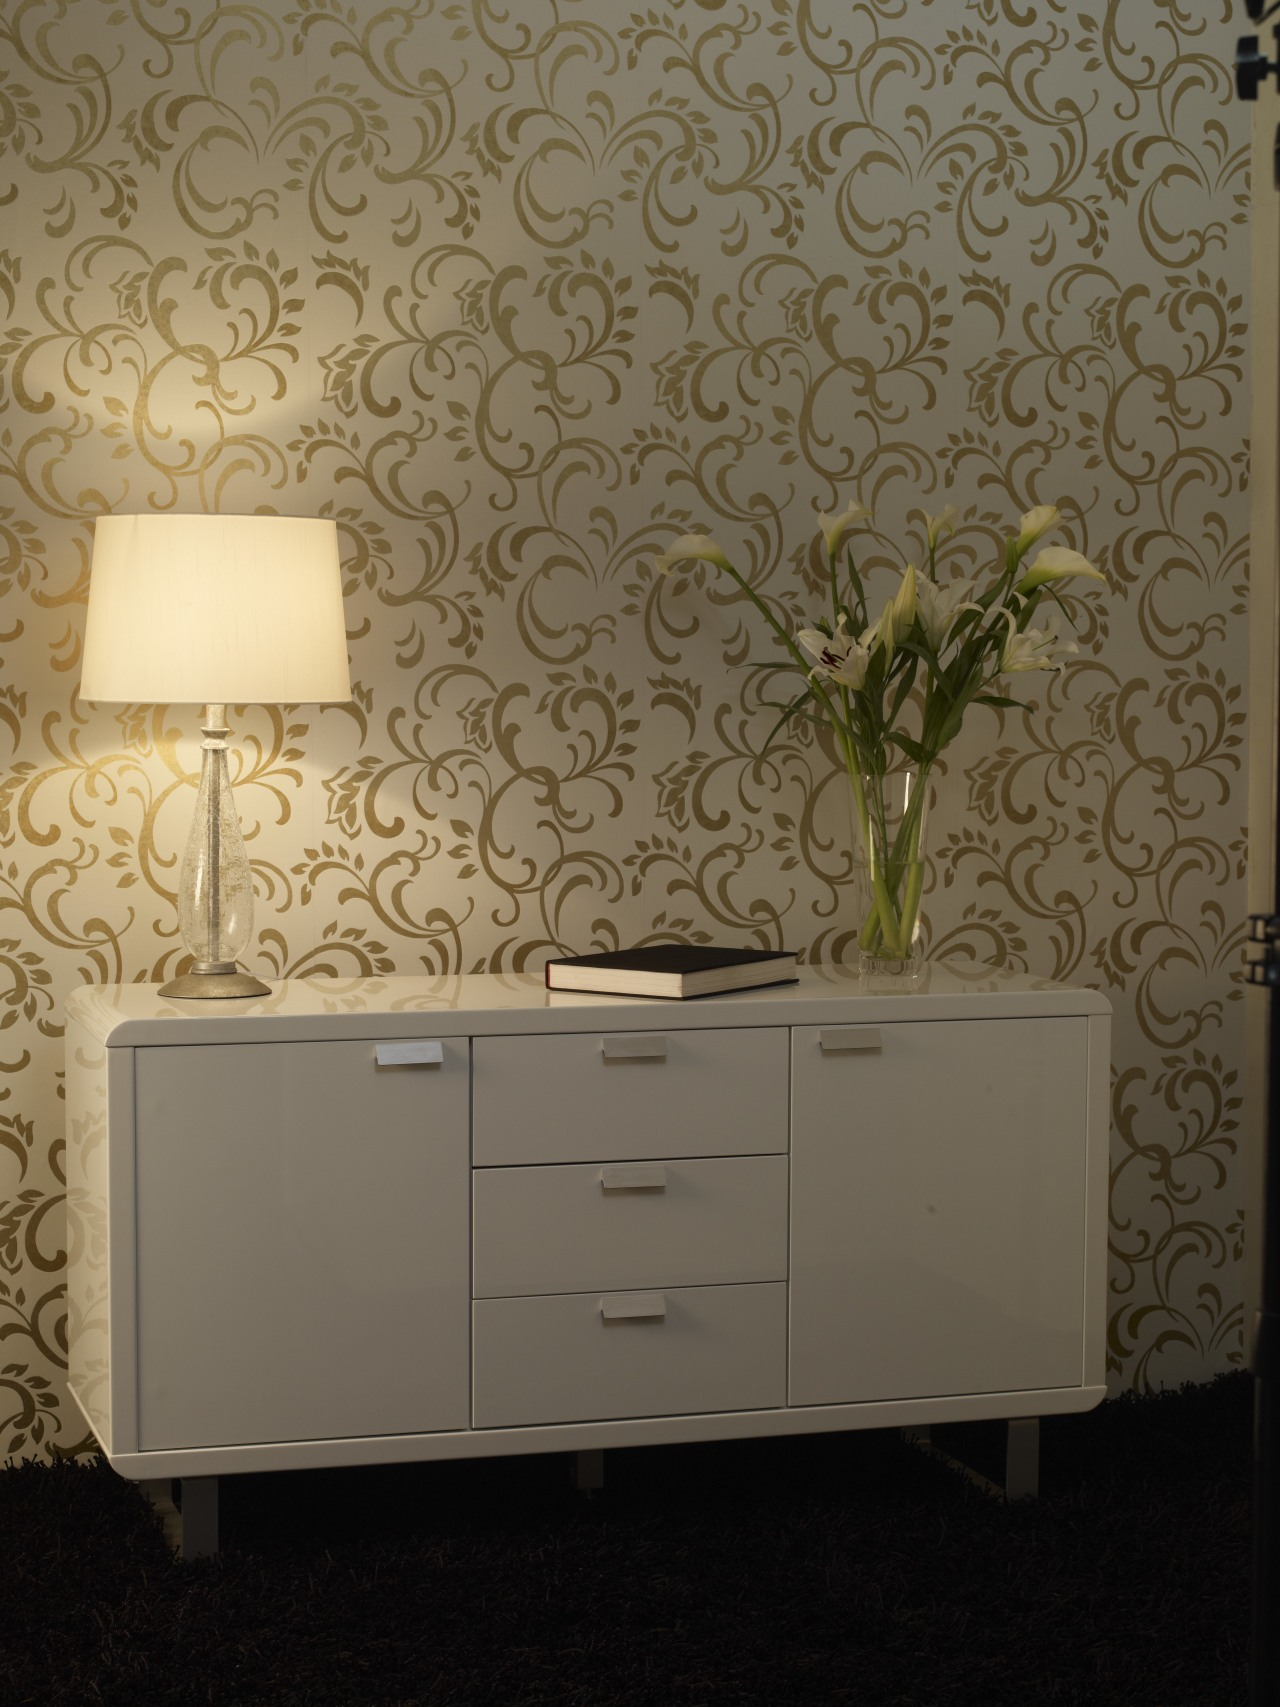 View of the wallcoverings by Pacific Wallcoverings ceiling, chest of drawers, drawer, floor, furniture, interior design, wall, wallpaper, brown